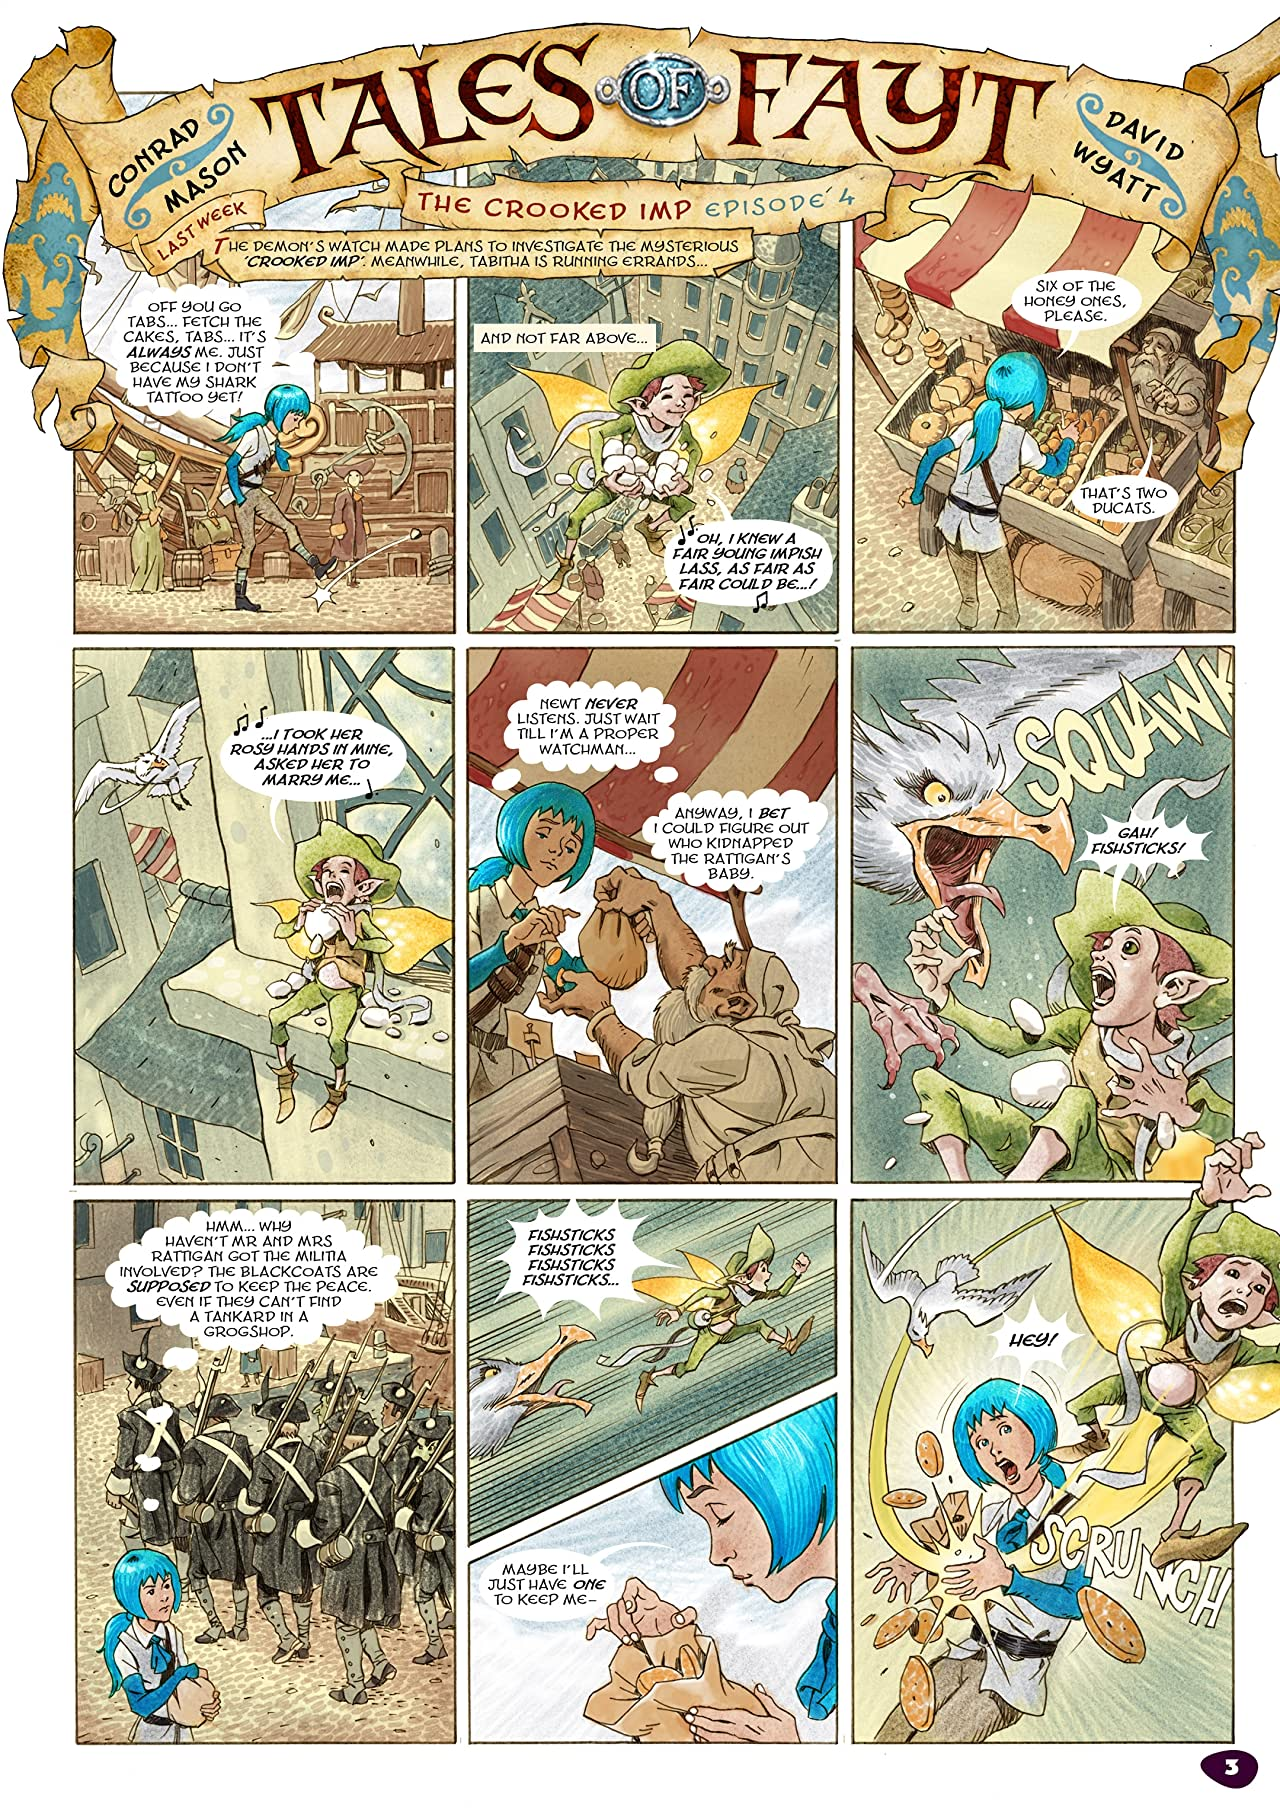 The Phoenix #128: The Weekly Story Comic